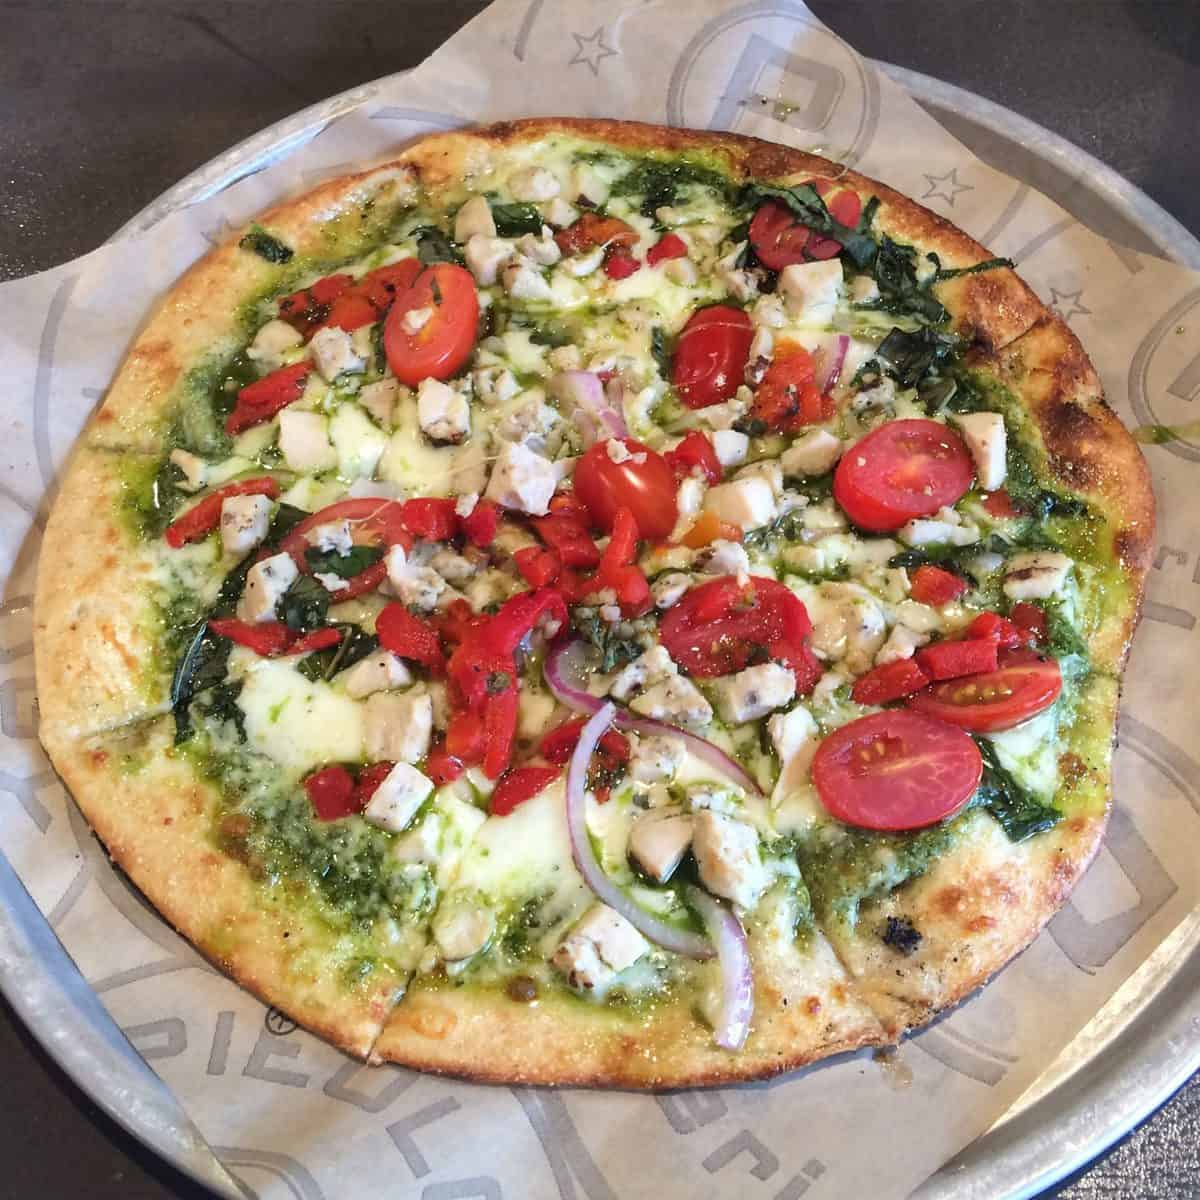 Pieology Pizza - My creation